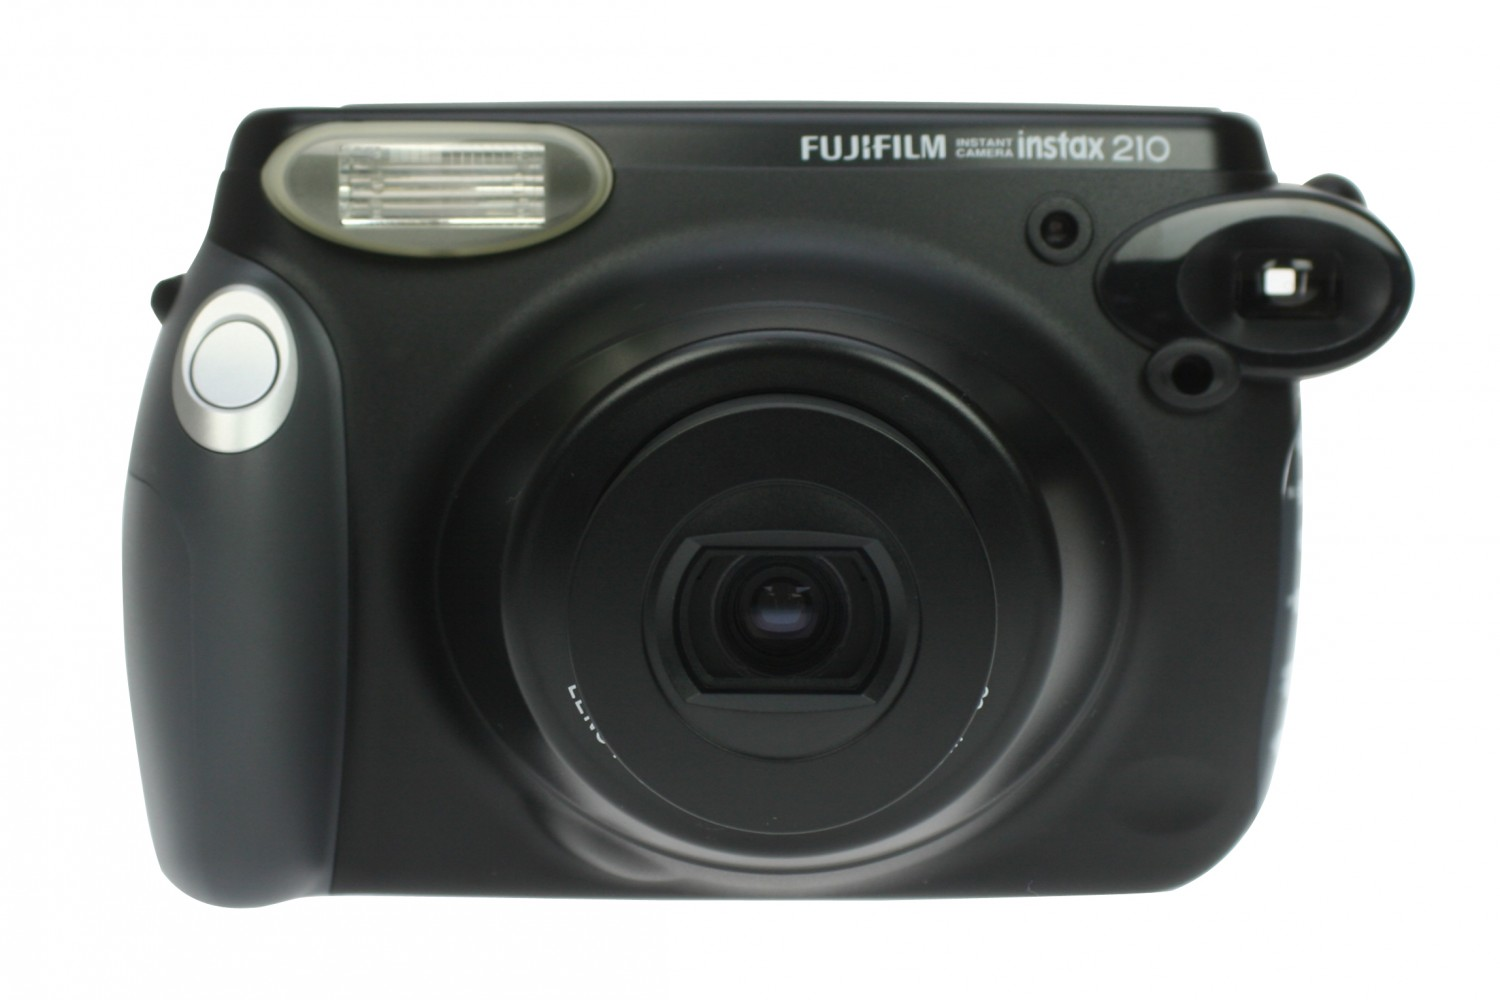 Fujifilm Instax 210 Wide Camera